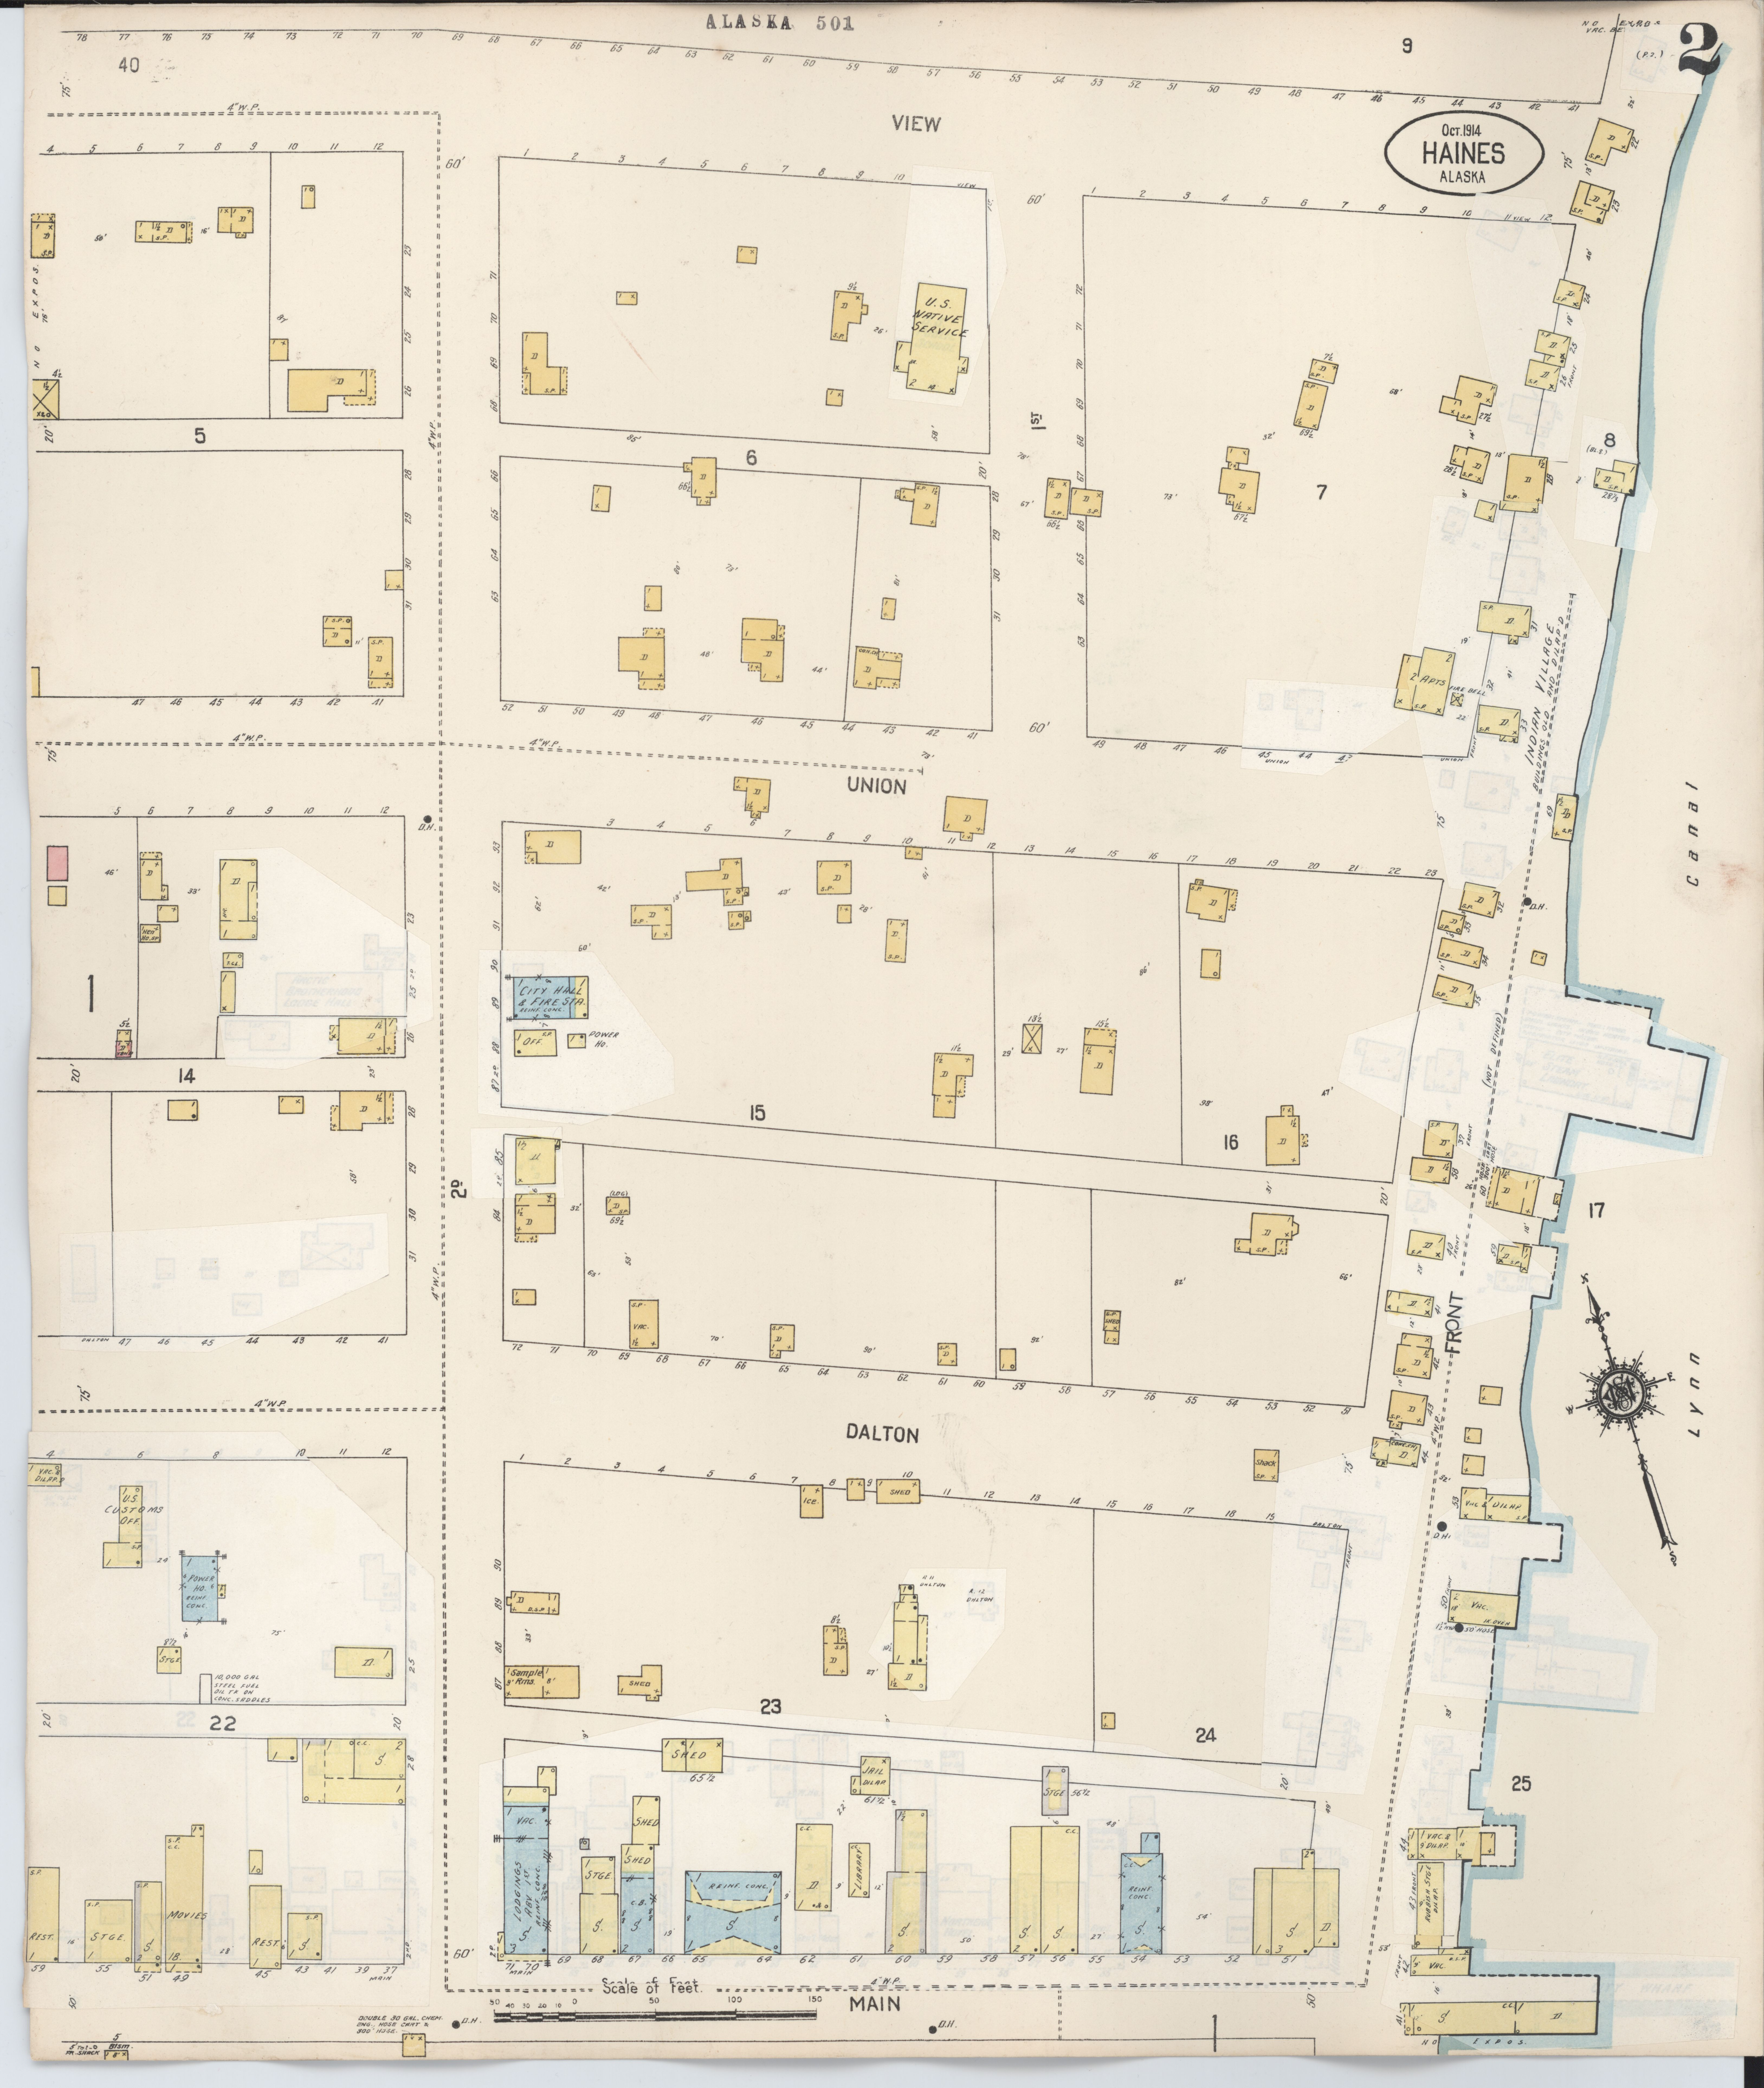 File Sanborn Fire Insurance Map From Haines Haines Census Division